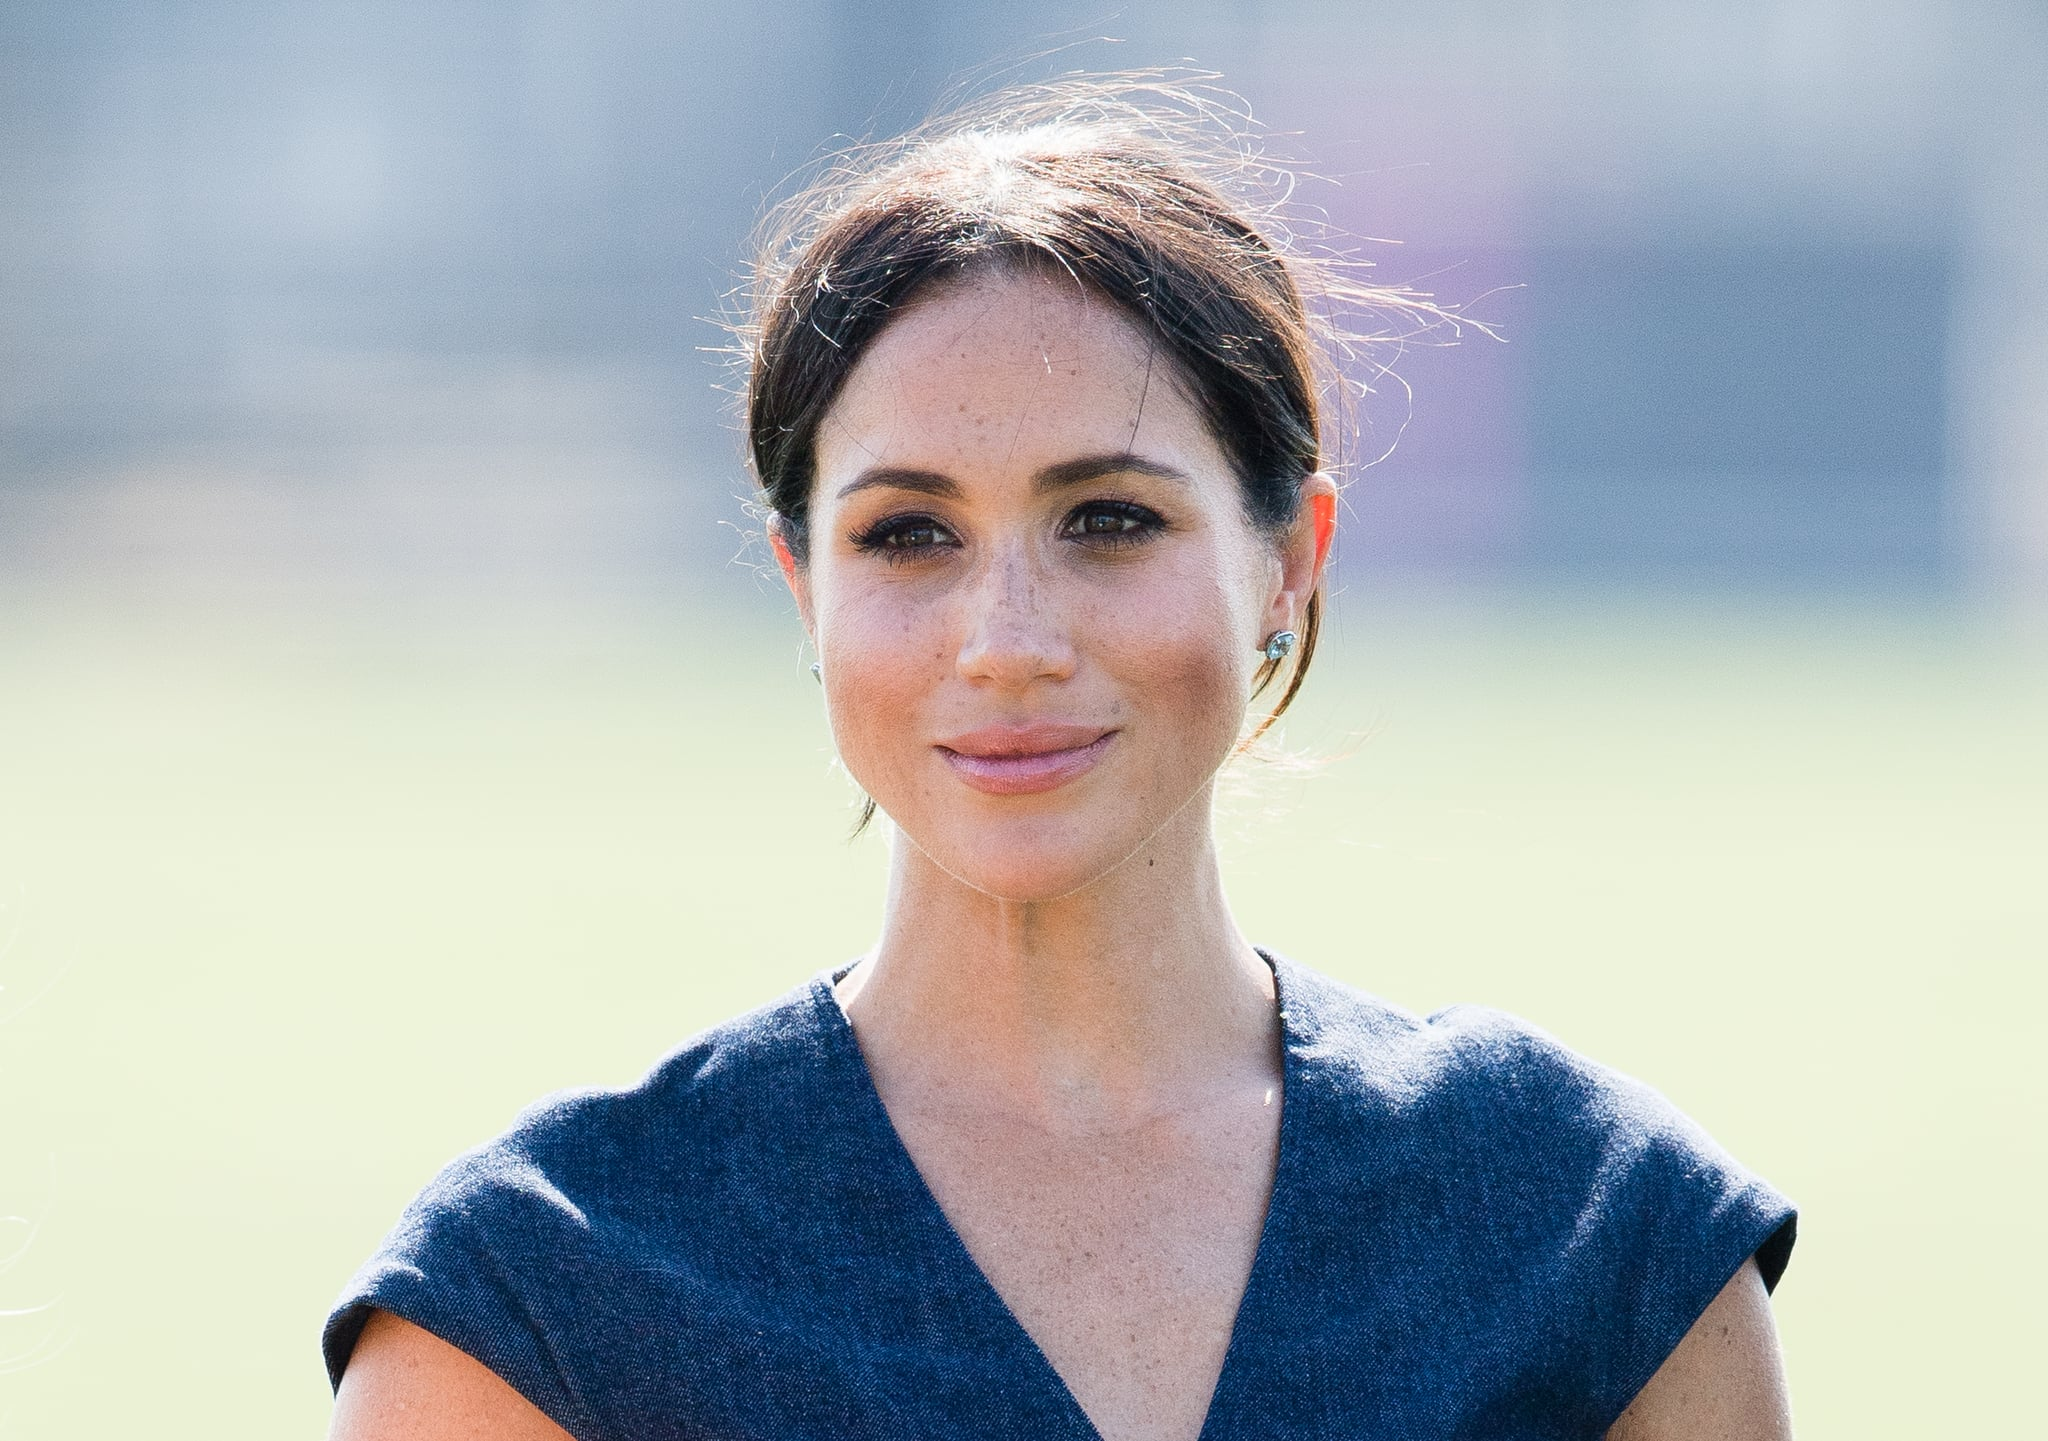 WINDSOR, ENGLAND - JULY 26:  Meghan, Duchess of Sussex attends the Sentebale Polo 2018 held at the Royal County of Berkshire Polo Club on July 26, 2018 in Windsor, England.  (Photo by Samir Hussein/Samir Hussein/WireImage)